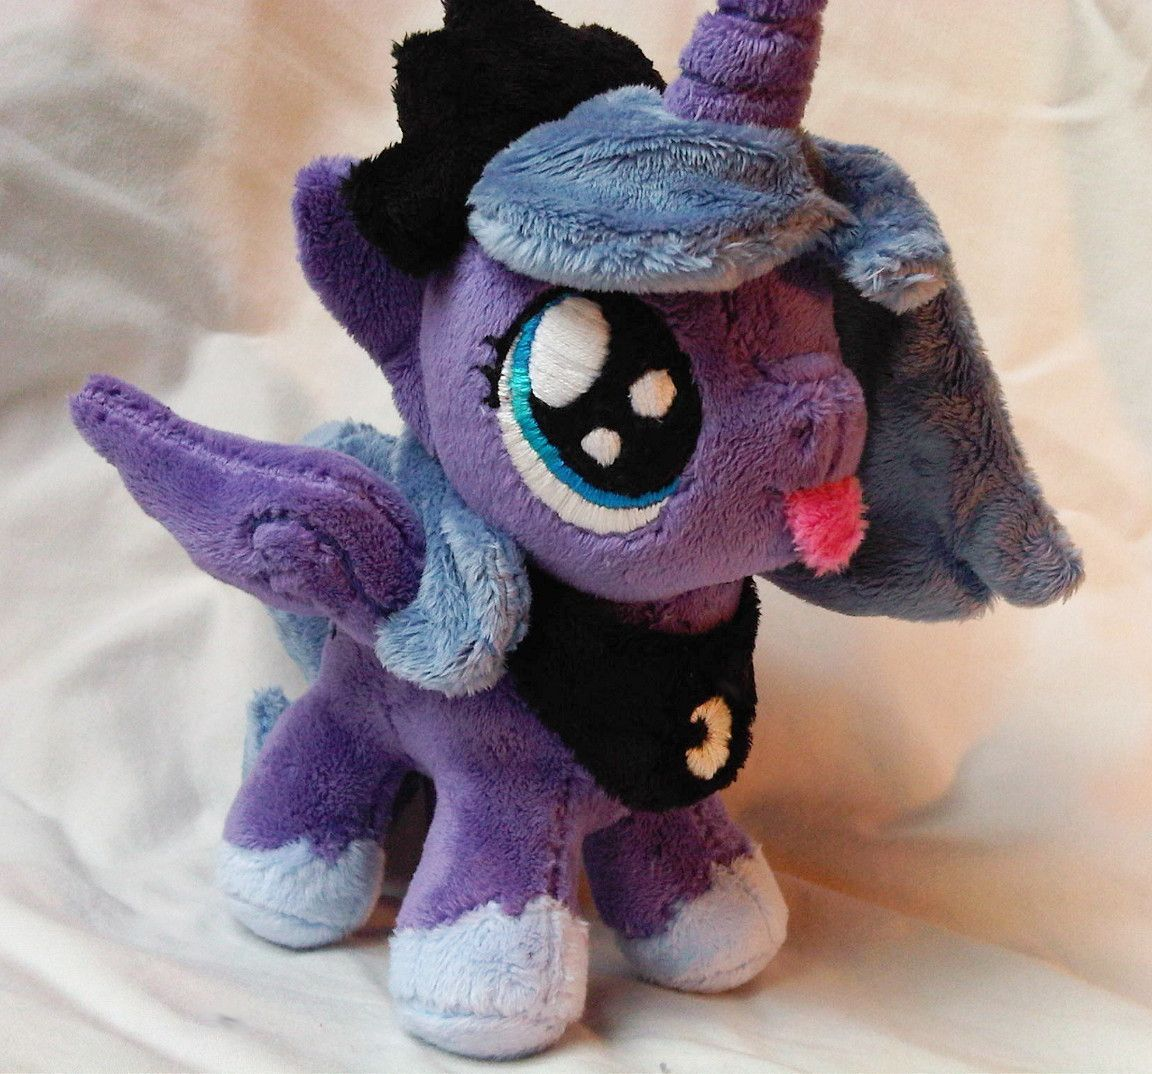 My Little Pony Friendship Is Magic Custom Handmade Plush